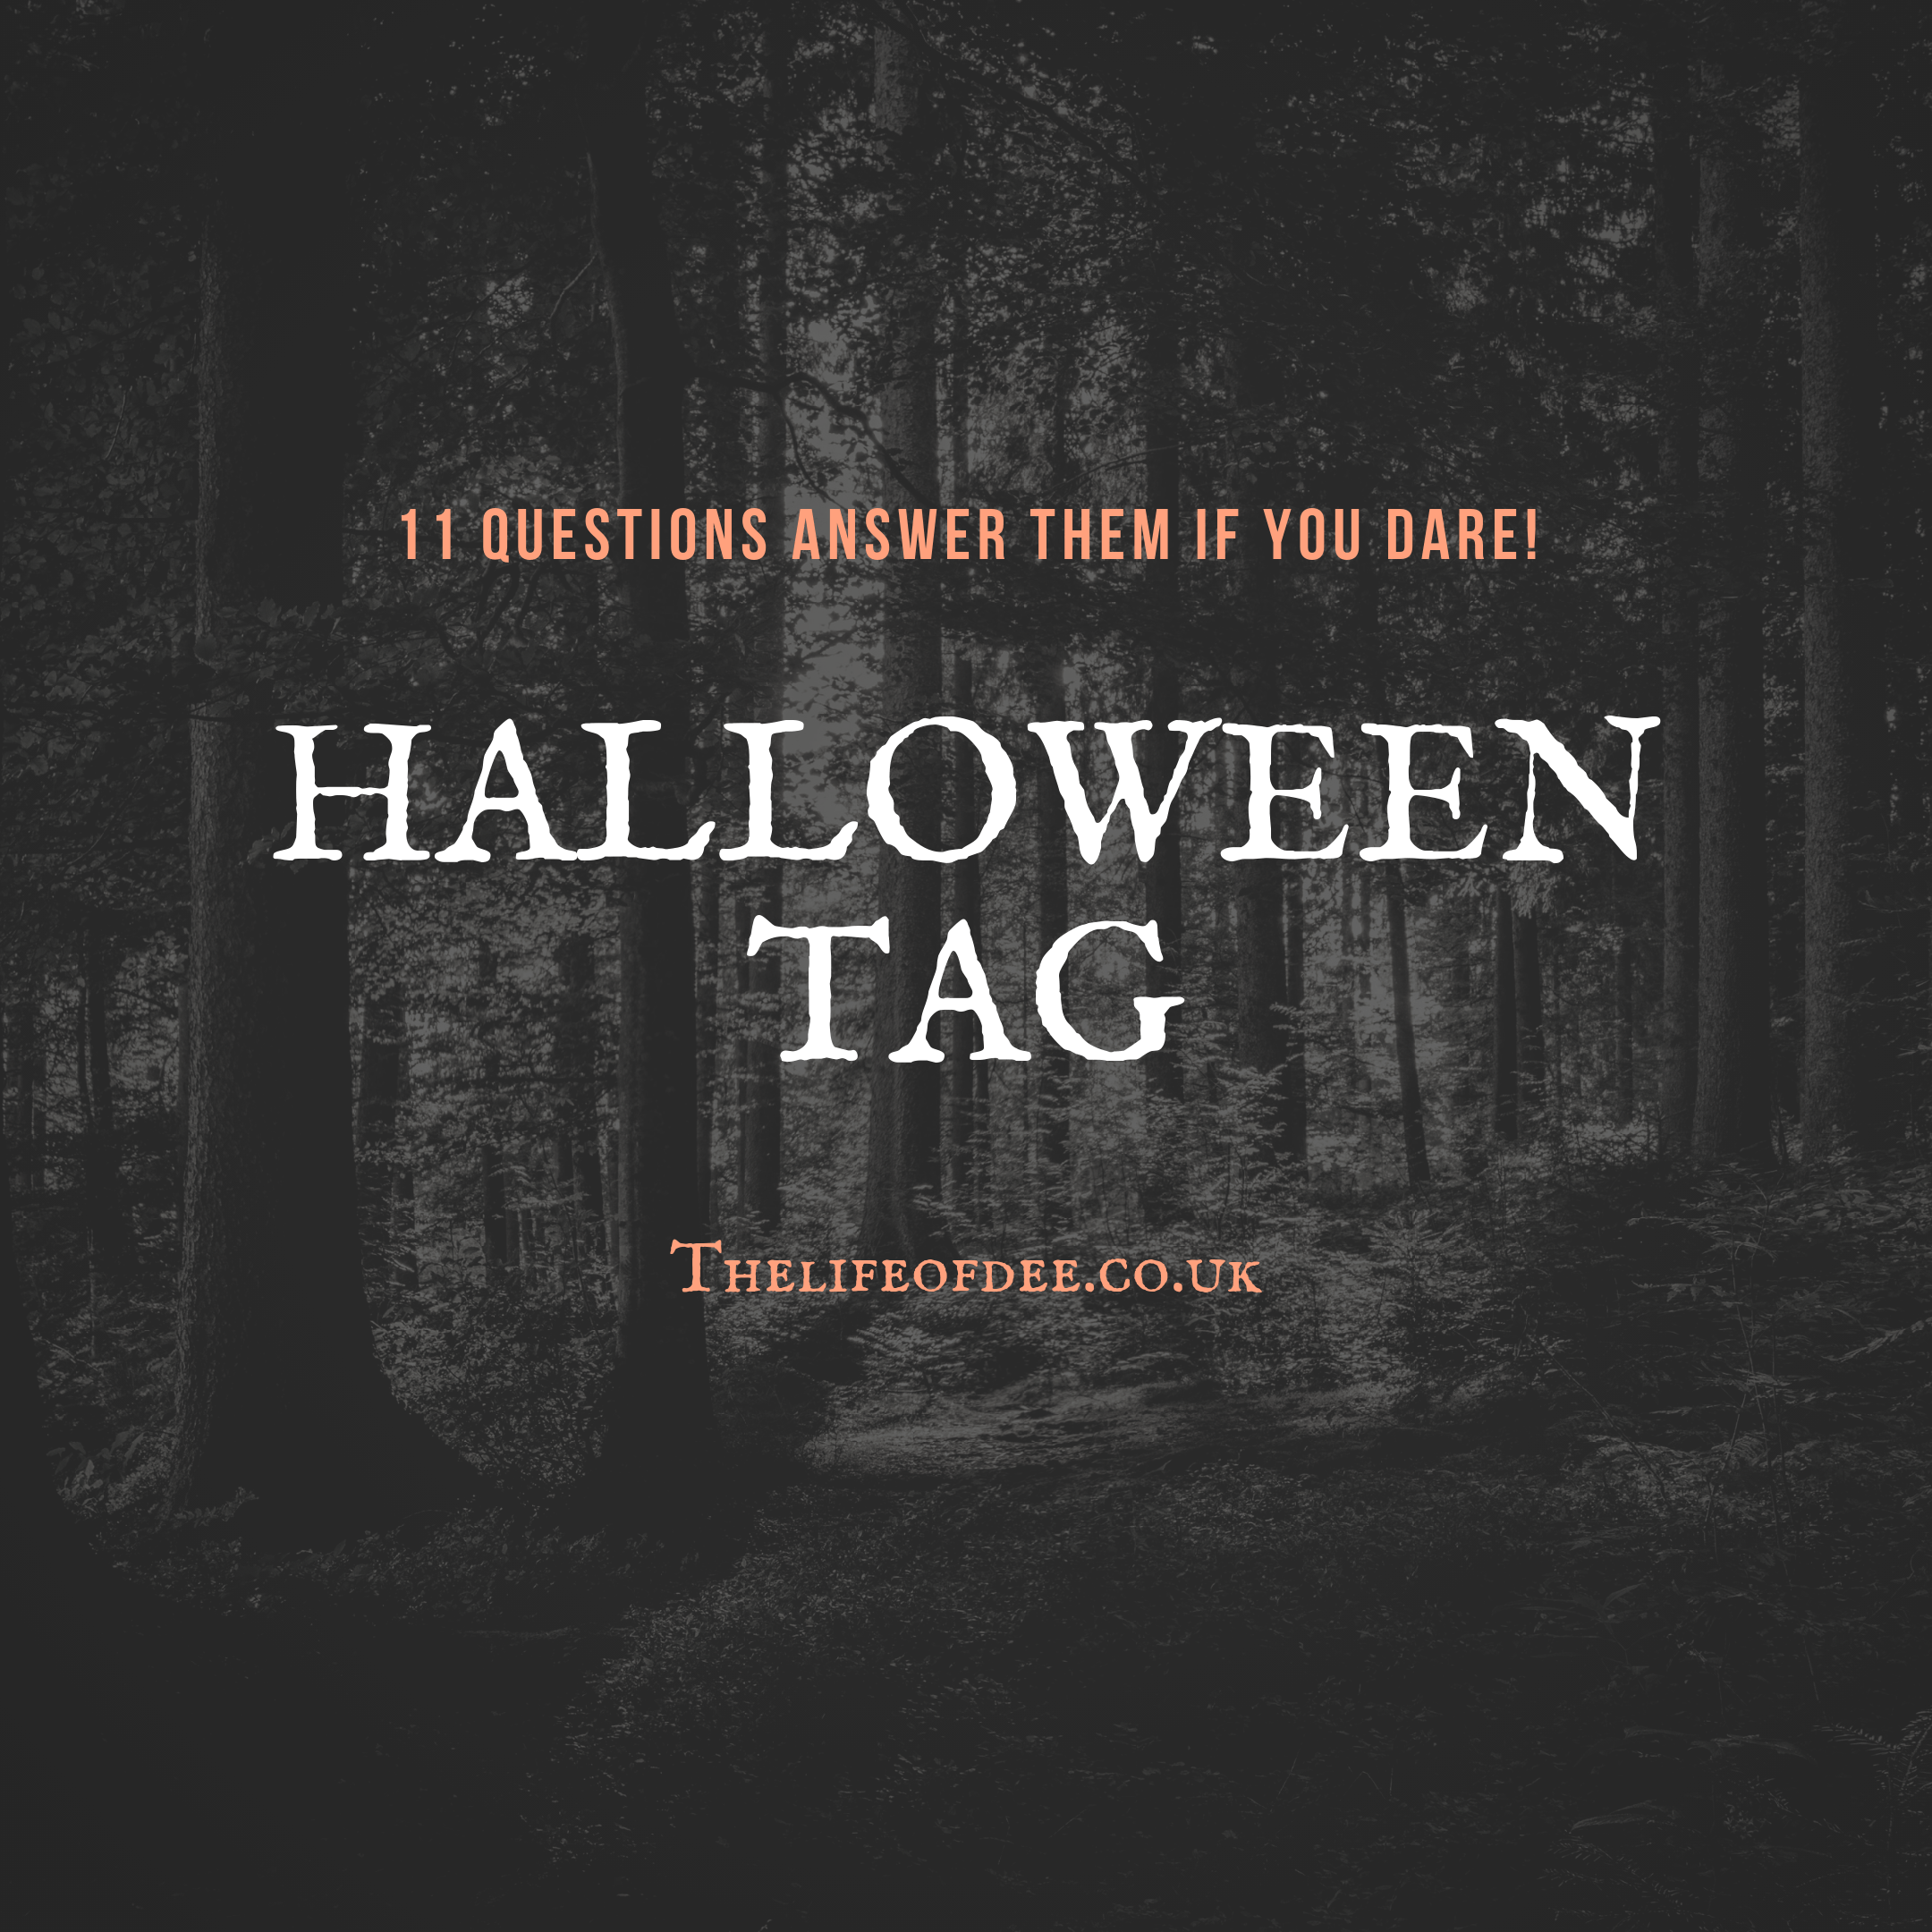 Halloween Tag | 11 Halloween questions to answer if you dare